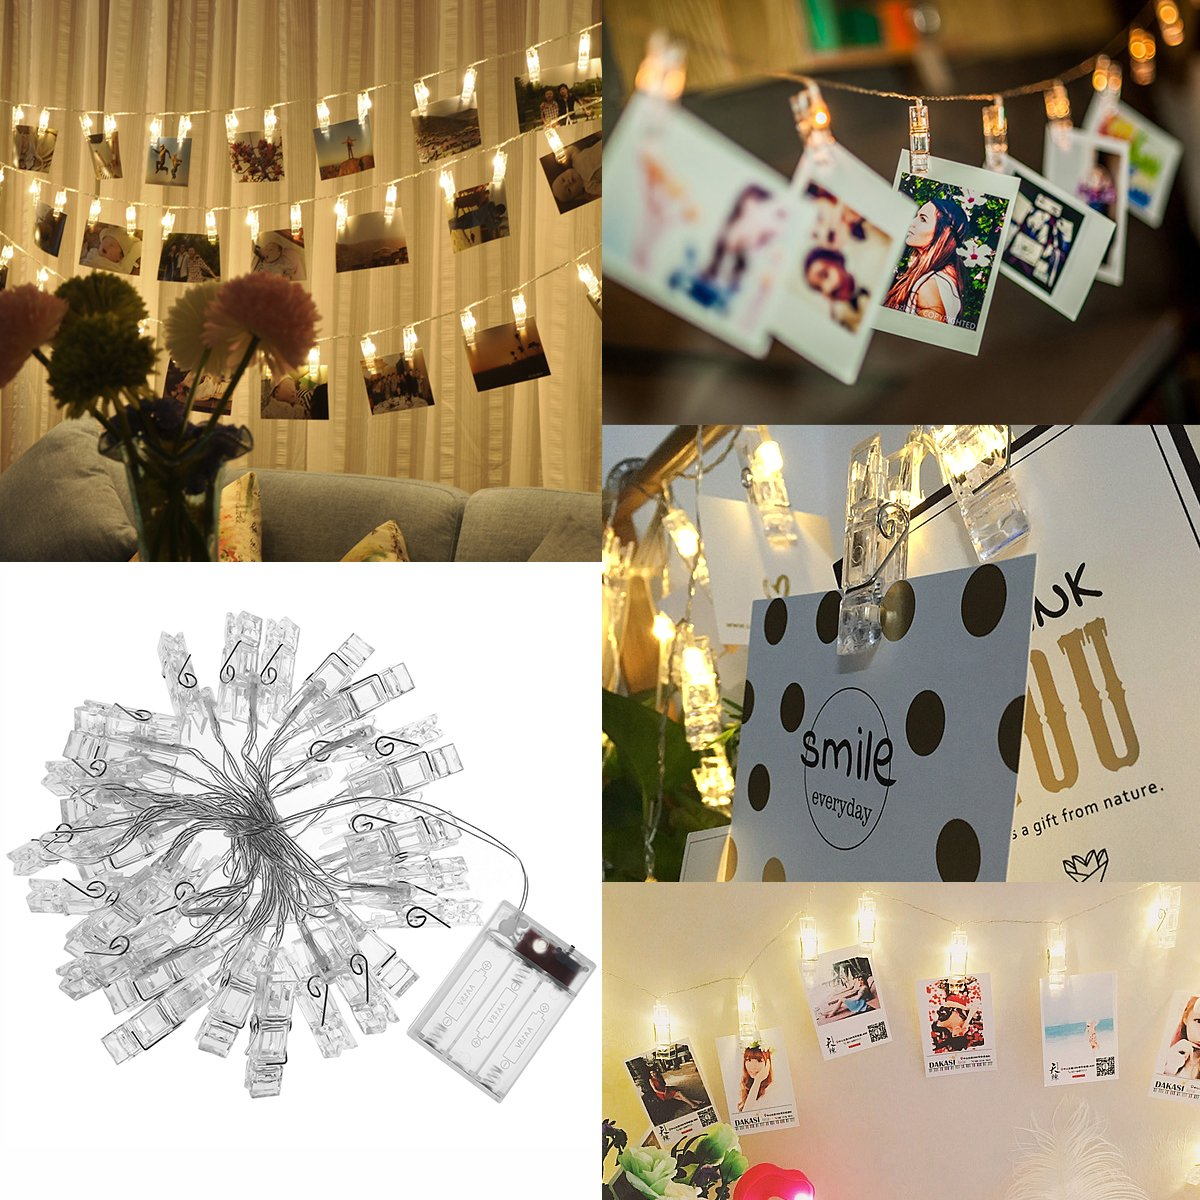 LEDMOMO 30 LED Photo Clip String Lights 13.1 Ft,Warm White Battery Operated for Home/Party/Christmas Decor